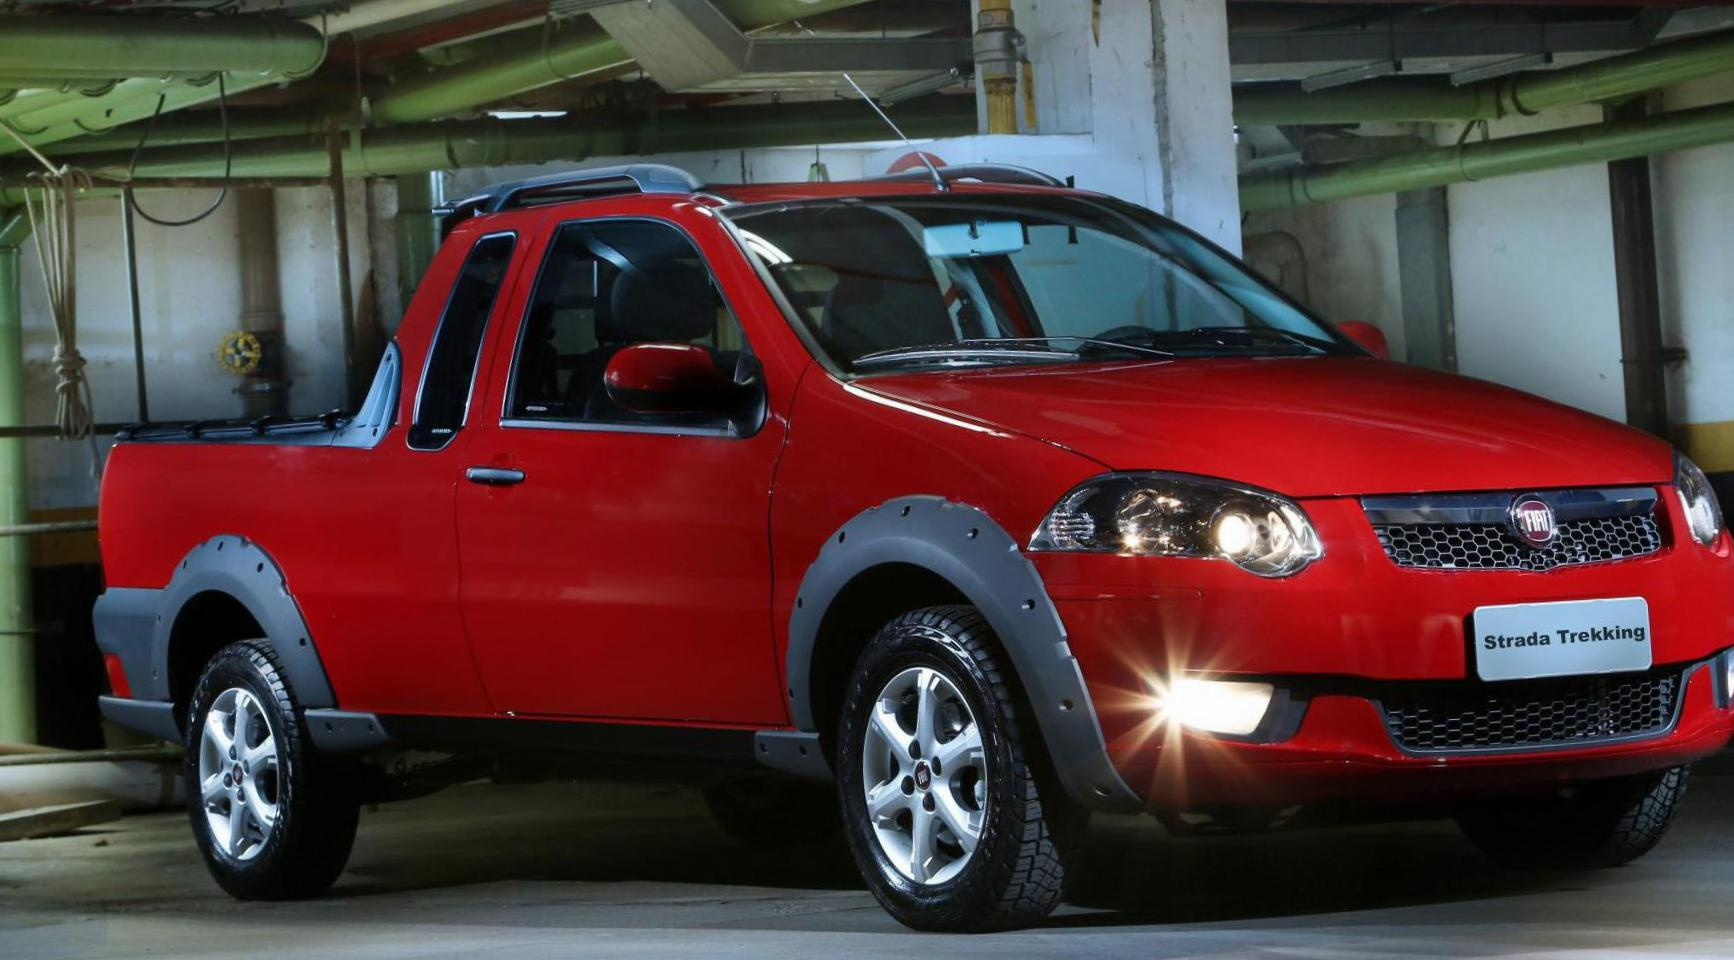 Fiat Strada Trekking CD reviews 2010